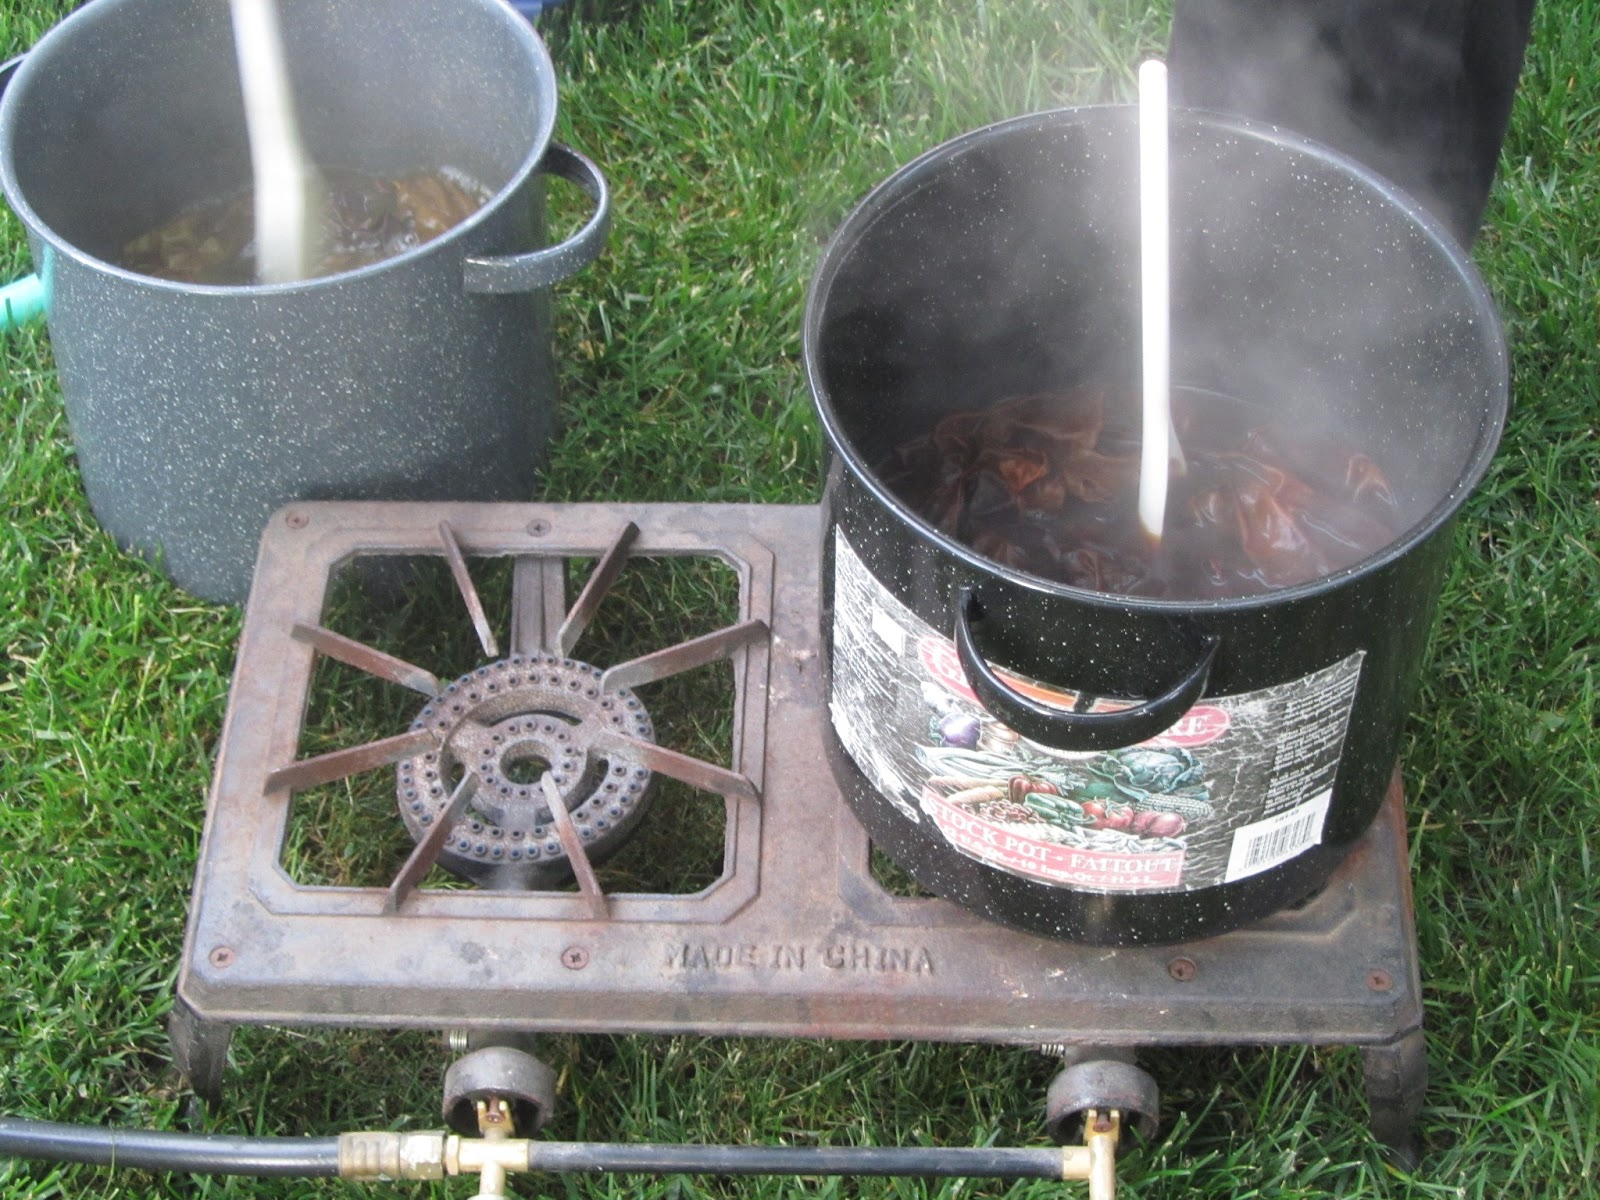 Chemknits natural dyeing silk scarves on mackinac island Propane stove left on overnight